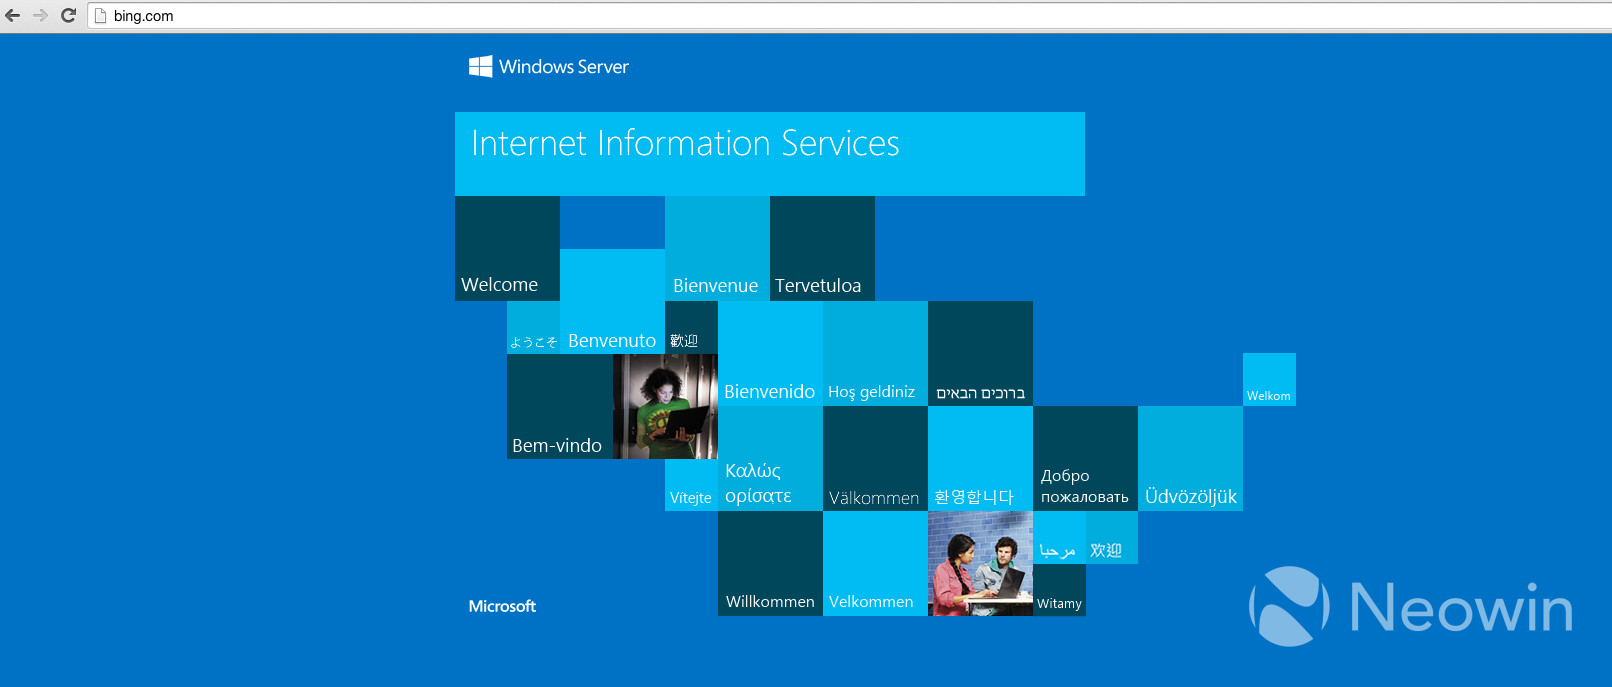 Bing, MSN, Outlook com, Hotmail and other Microsoft services hit